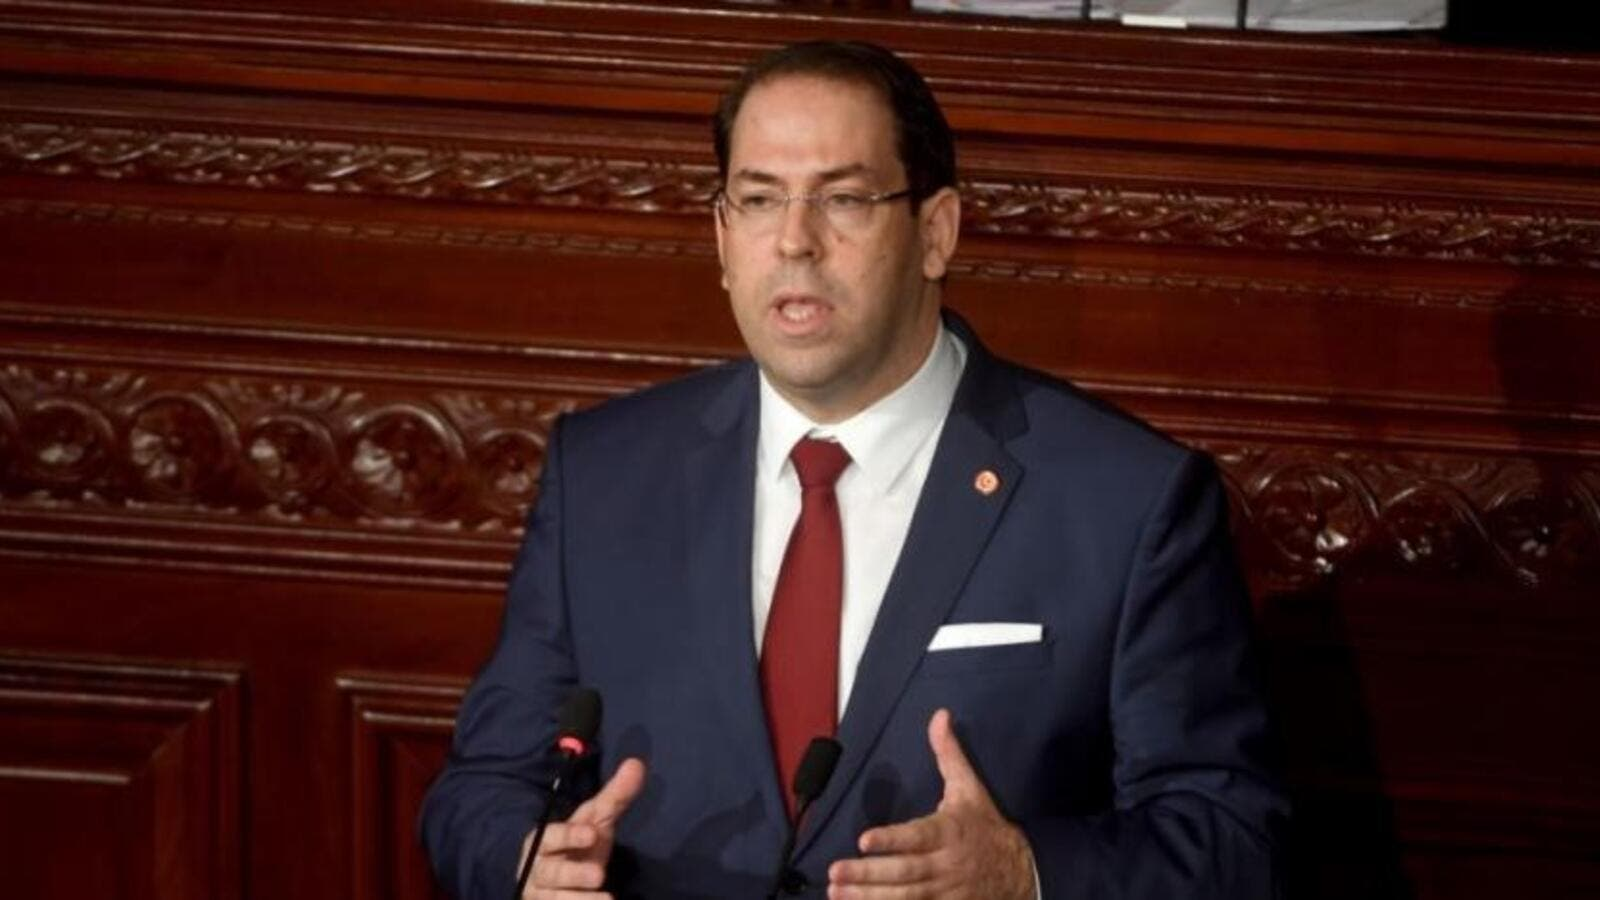 Tunisian Prime Minister Youssef Chahed speaks to the parliament in Tunis. (AFP/File Photo)